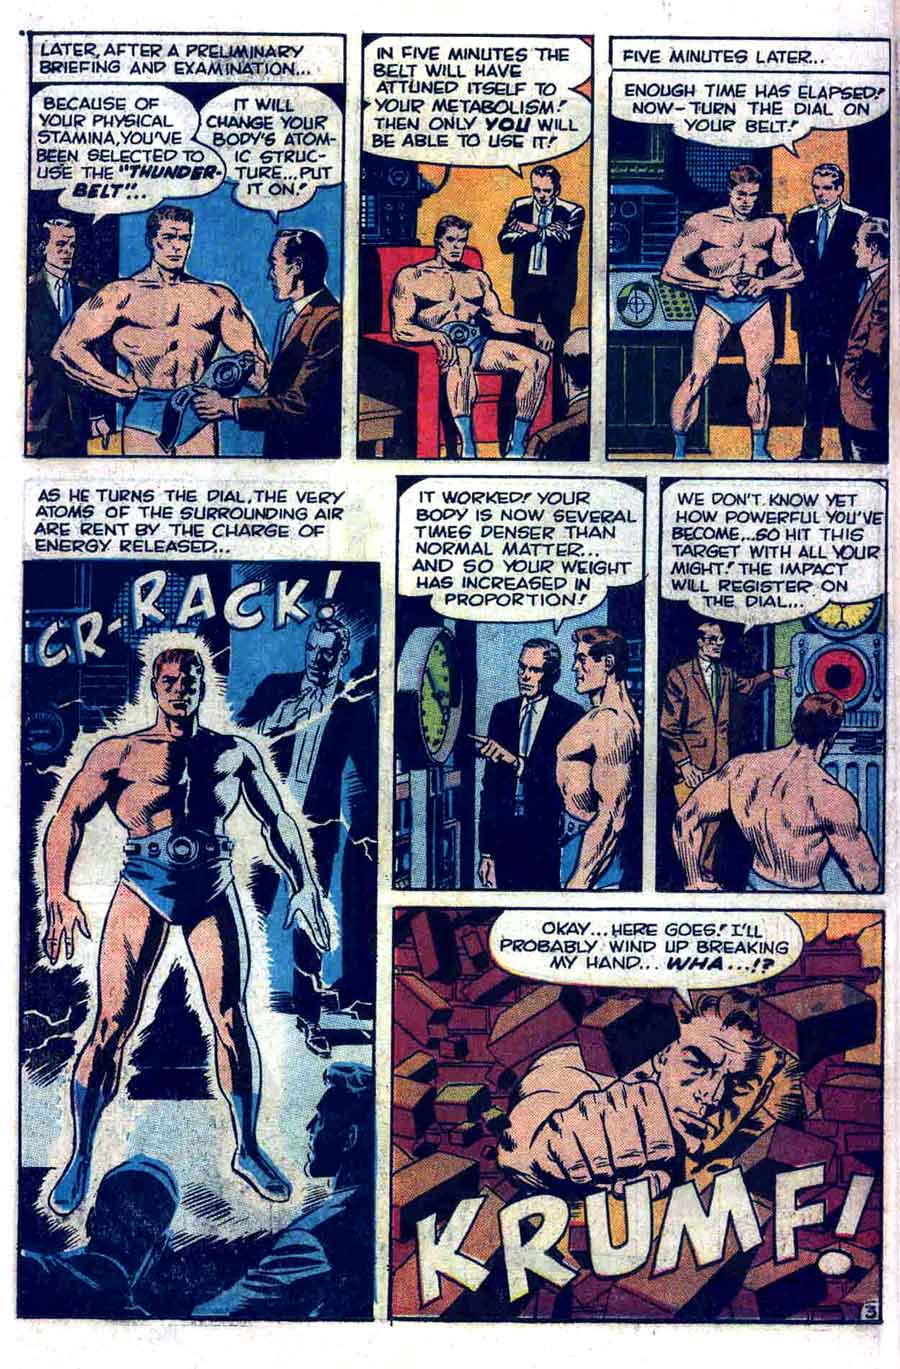 Thunder Agents v1 #1 tower comic book page art by Wally Wood